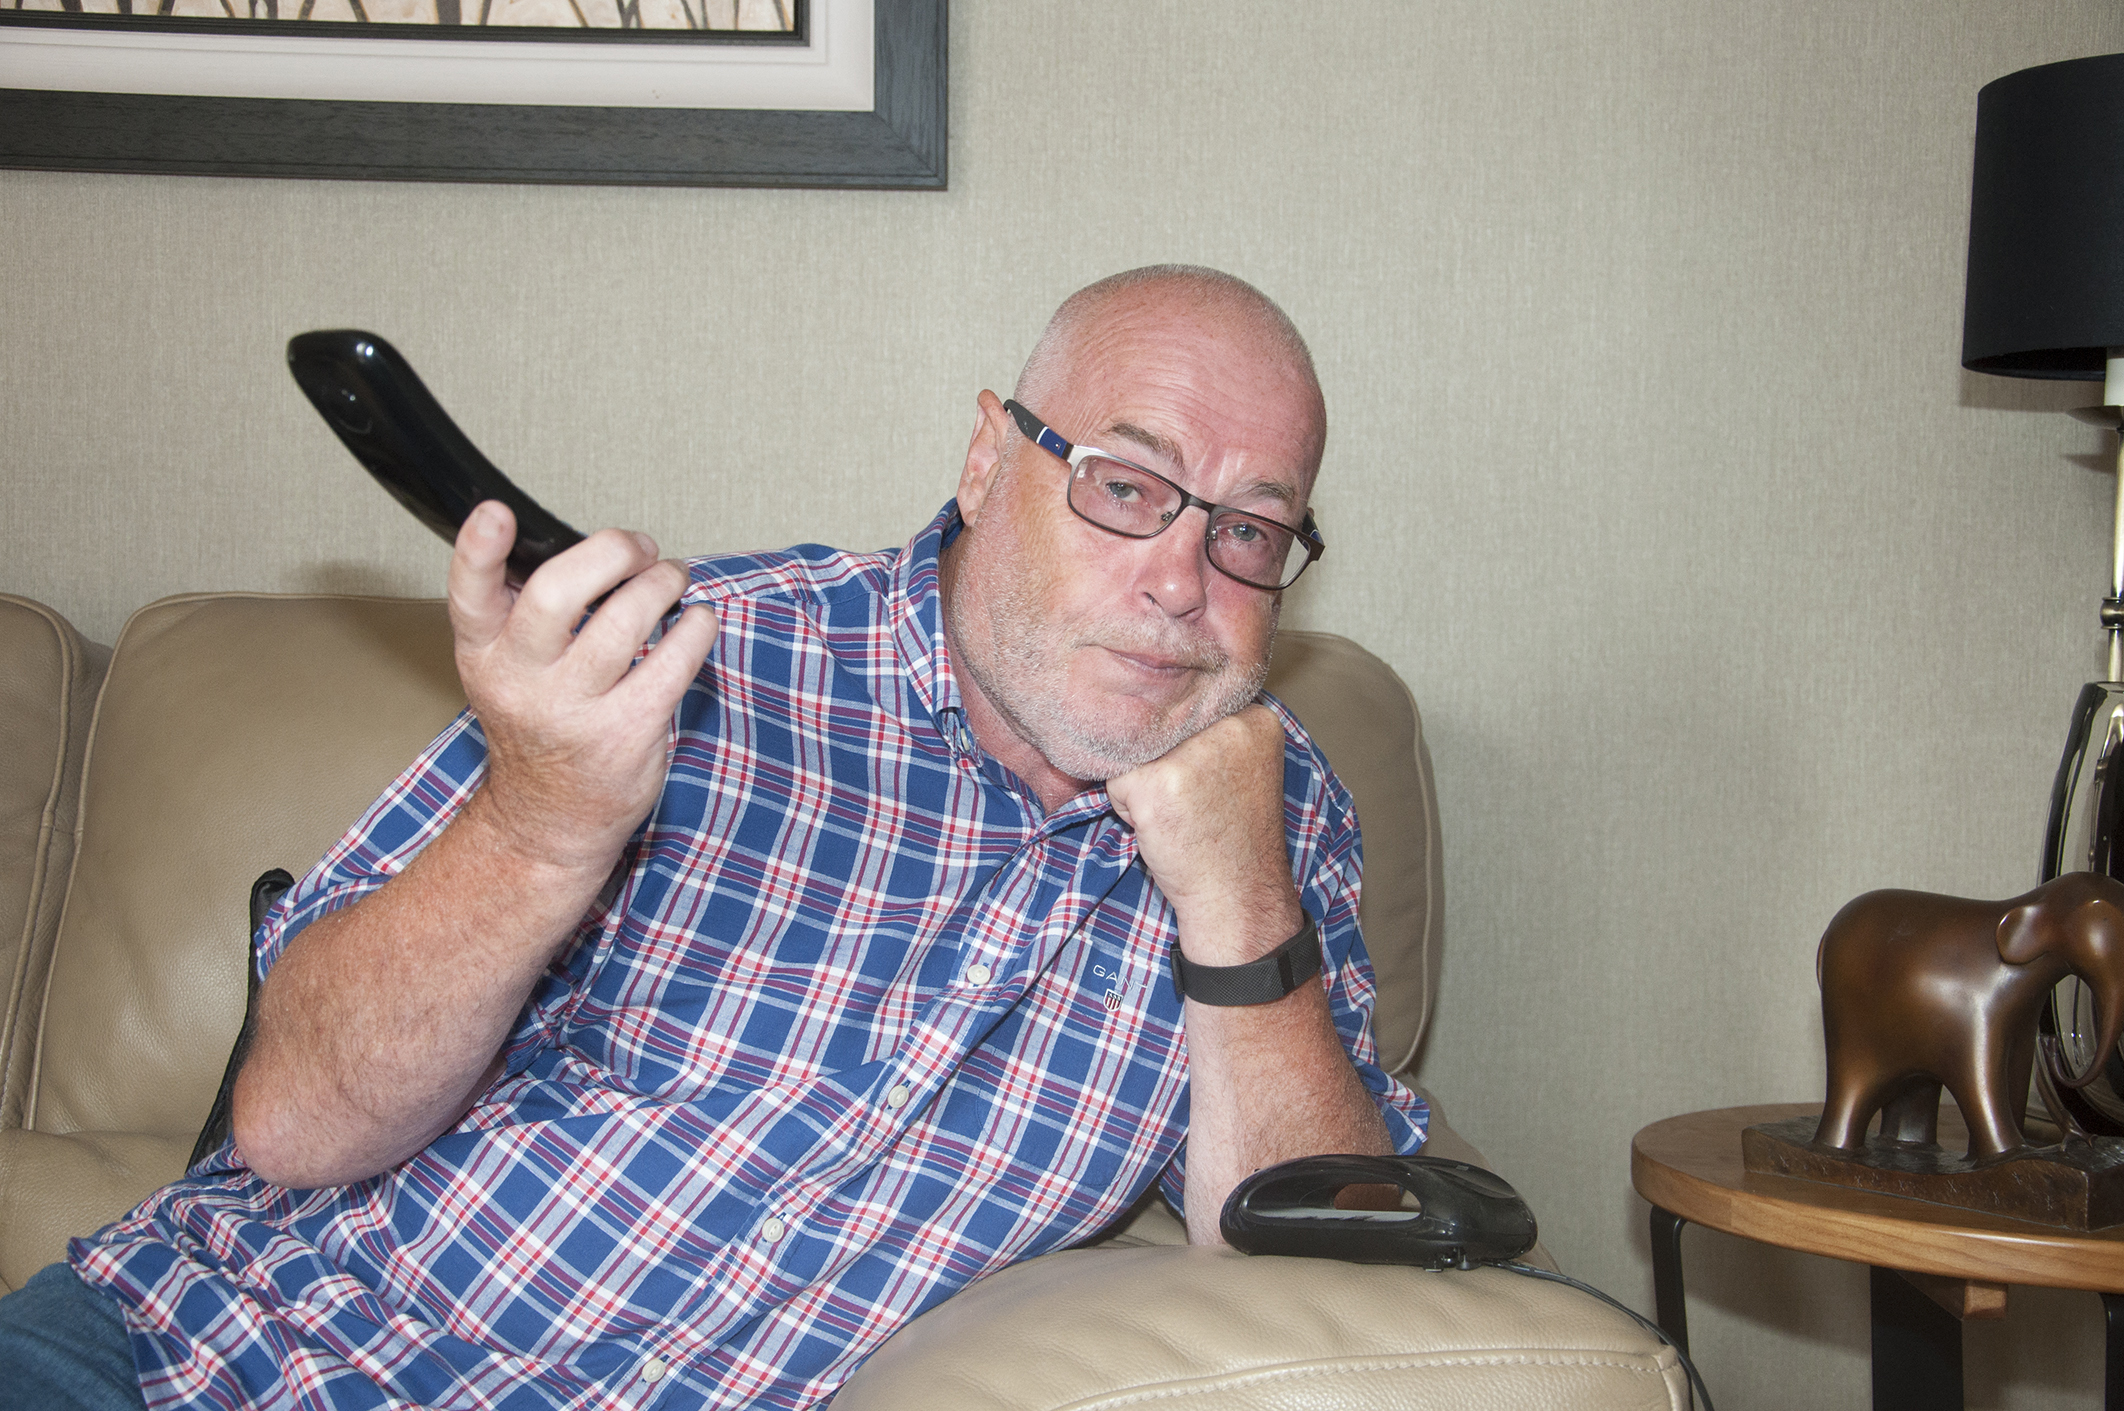 Hanging up - Councillor David Fairweather has been left disgusted by the tales of nuisance callers.